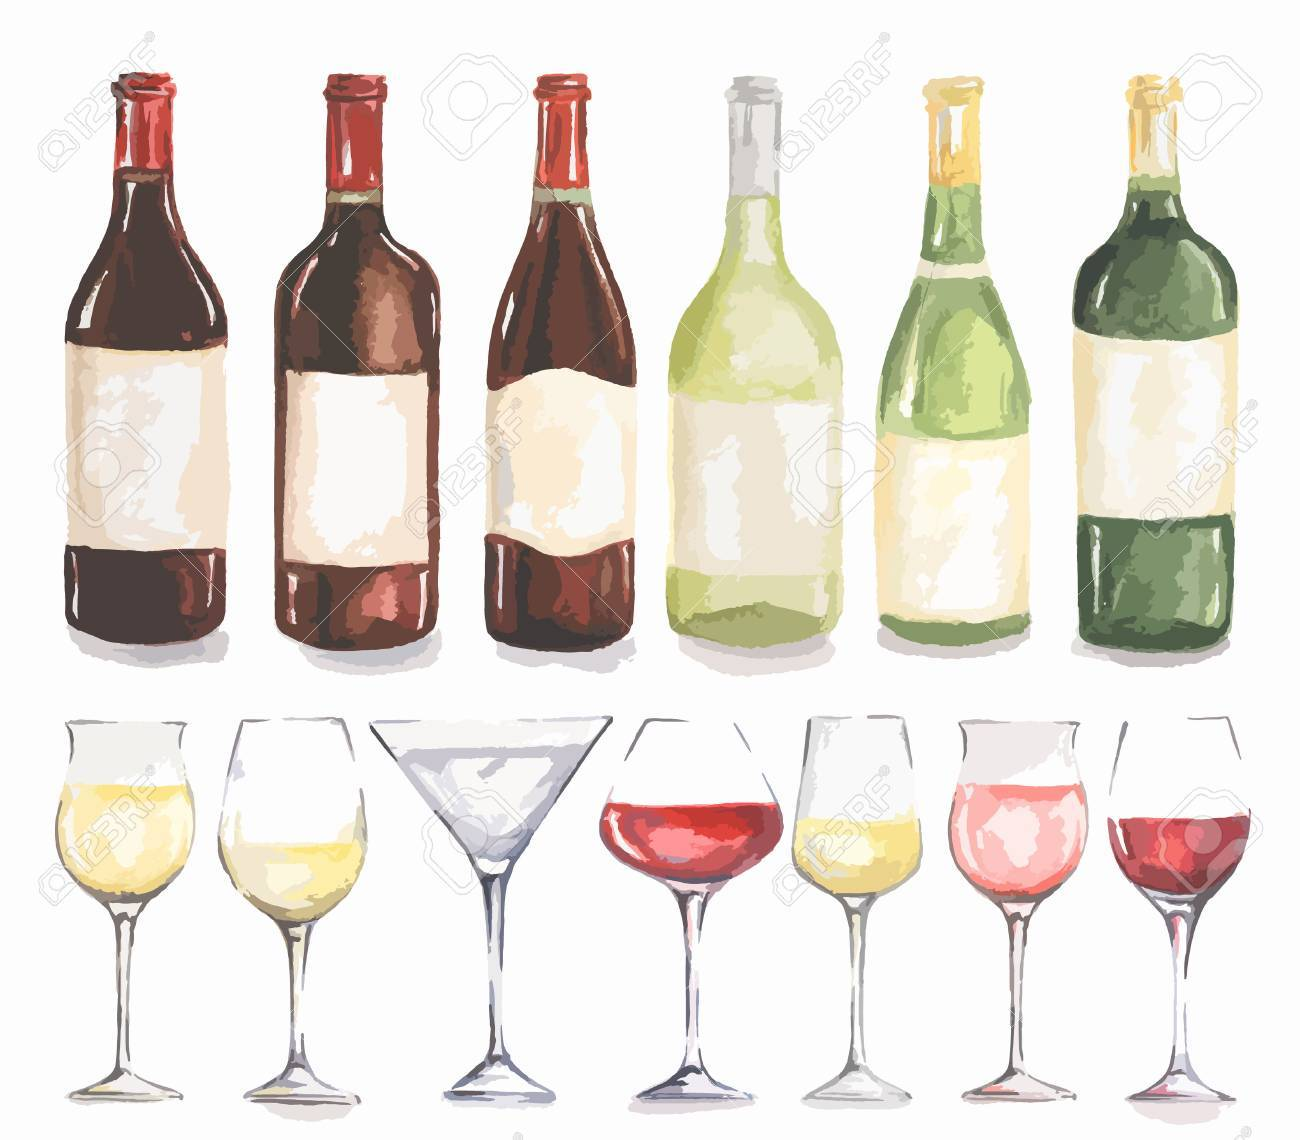 Watercolor Wine Bottles And Glasses Set Beautiful Royalty Free Cliparts Vectors Stock Illustration Image 61483134